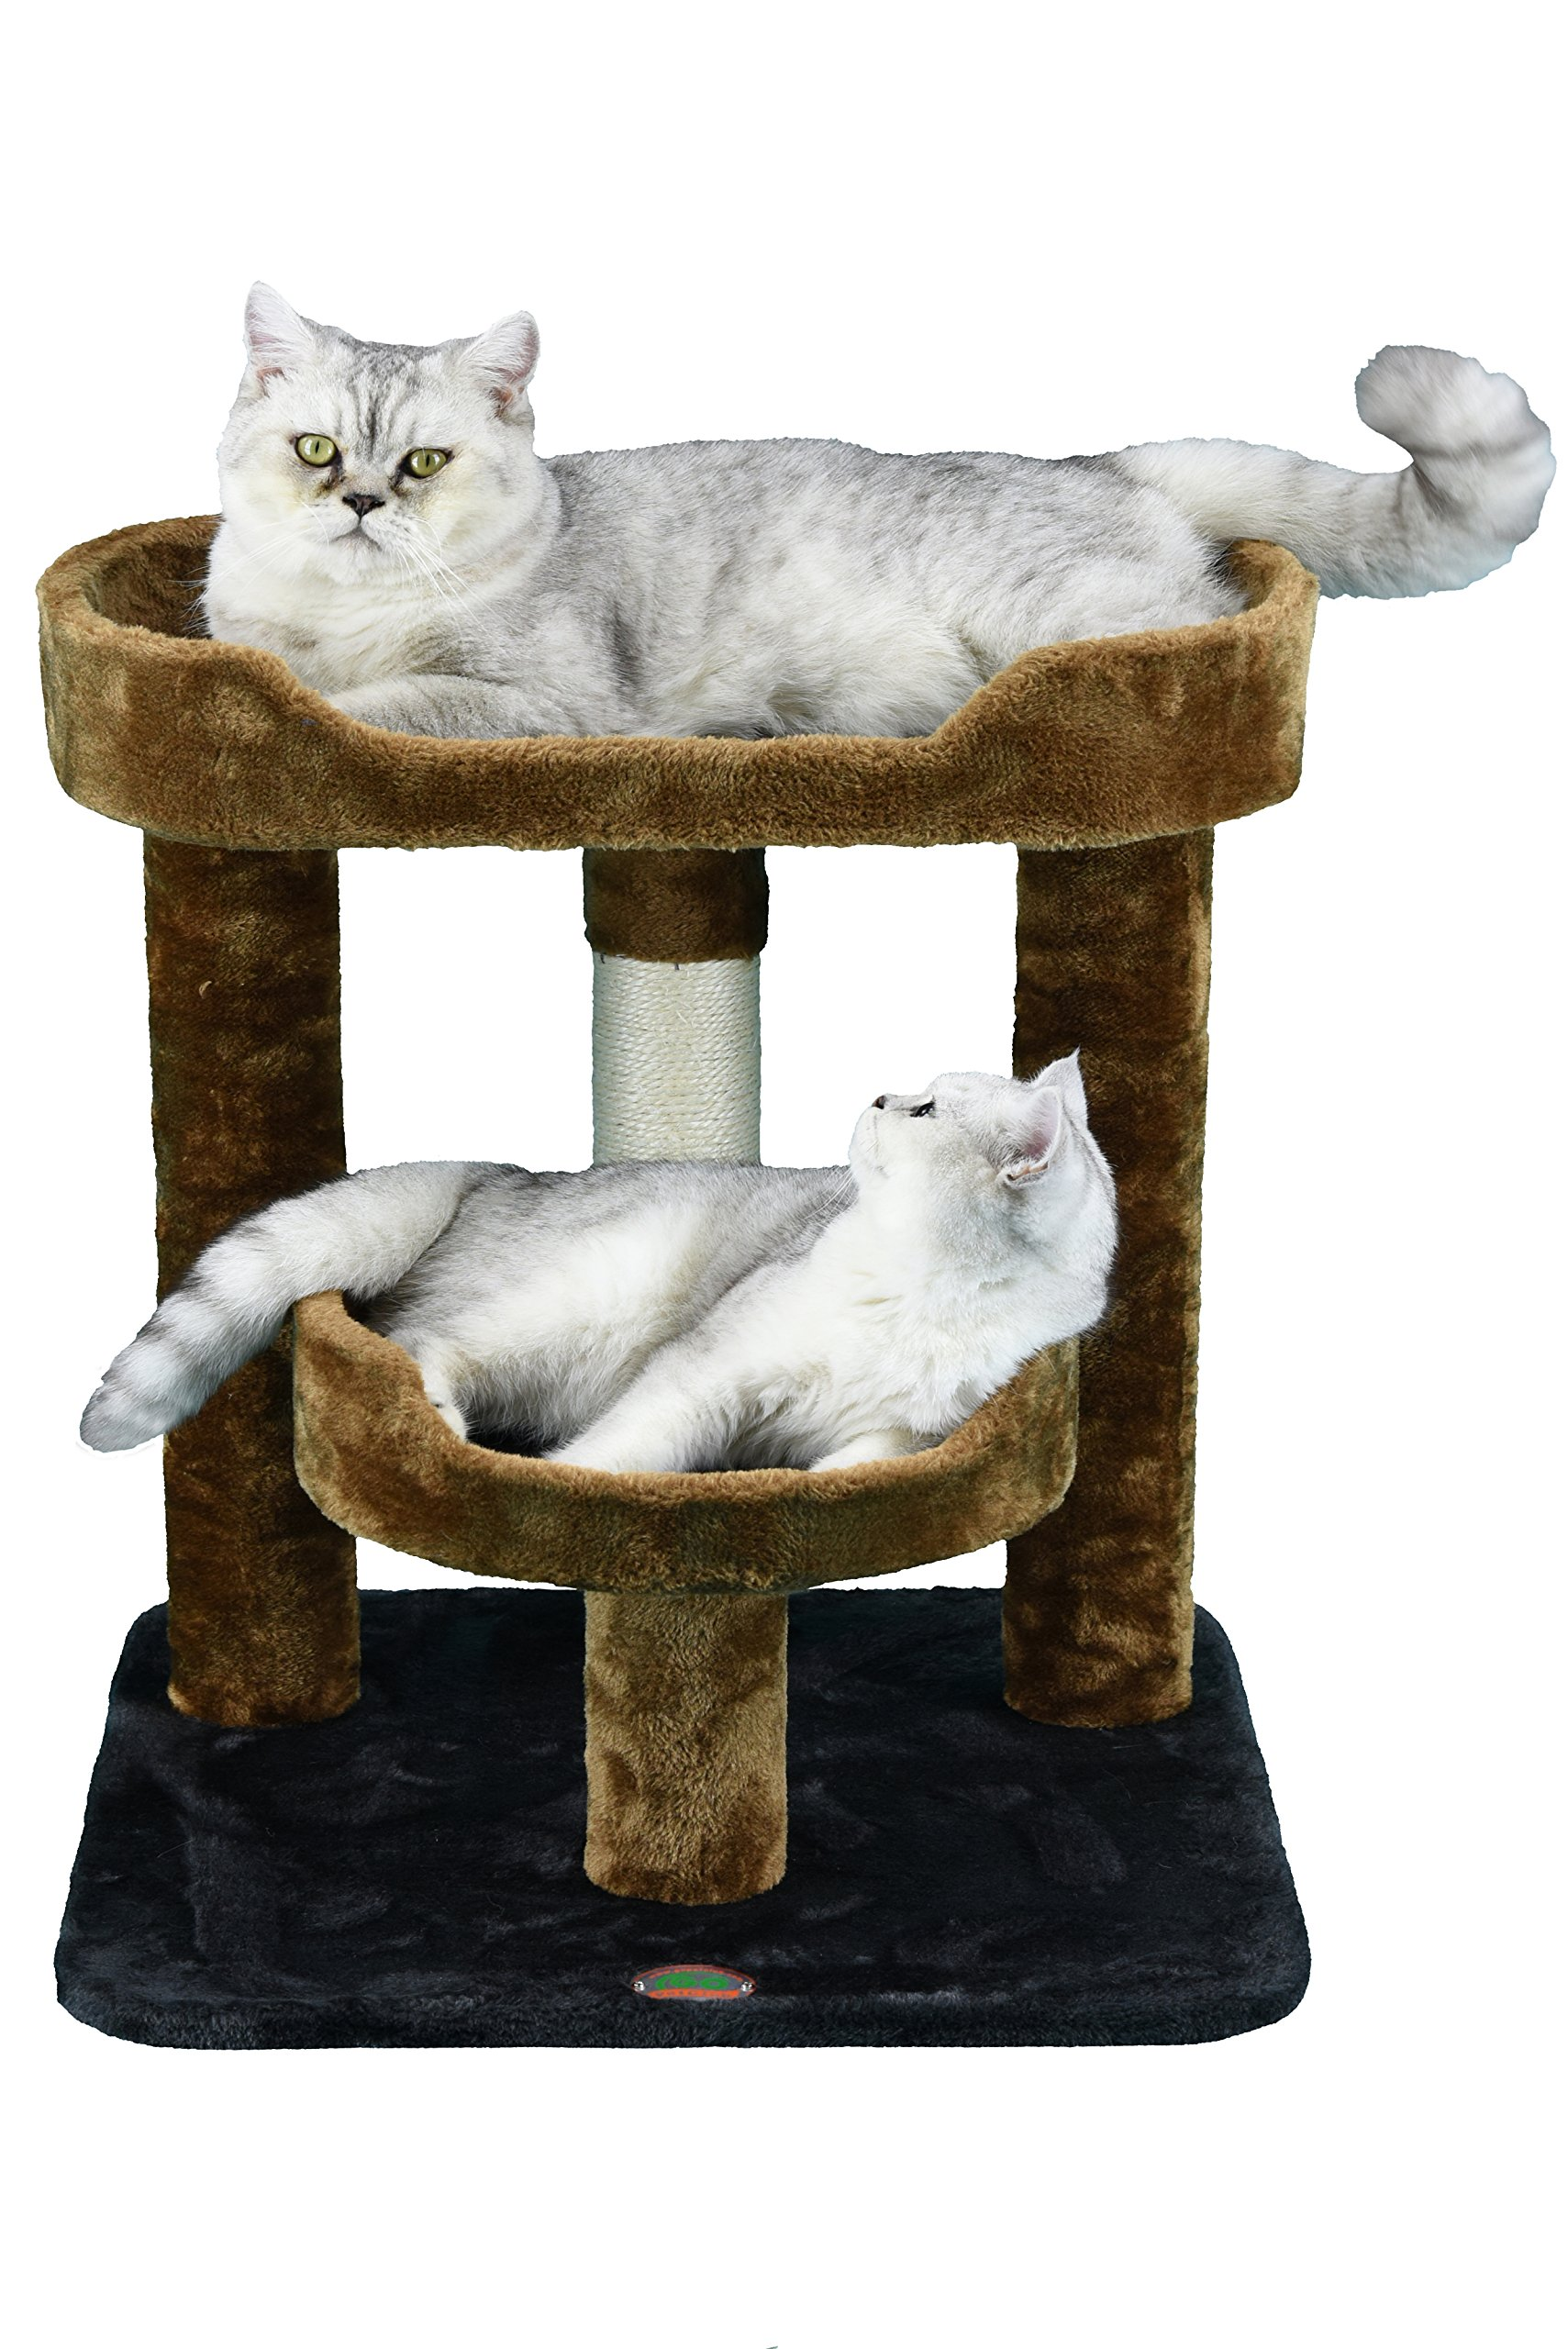 Go Pet Club F3019 Cat Scratcher Condo Furniture by Go Pet Club